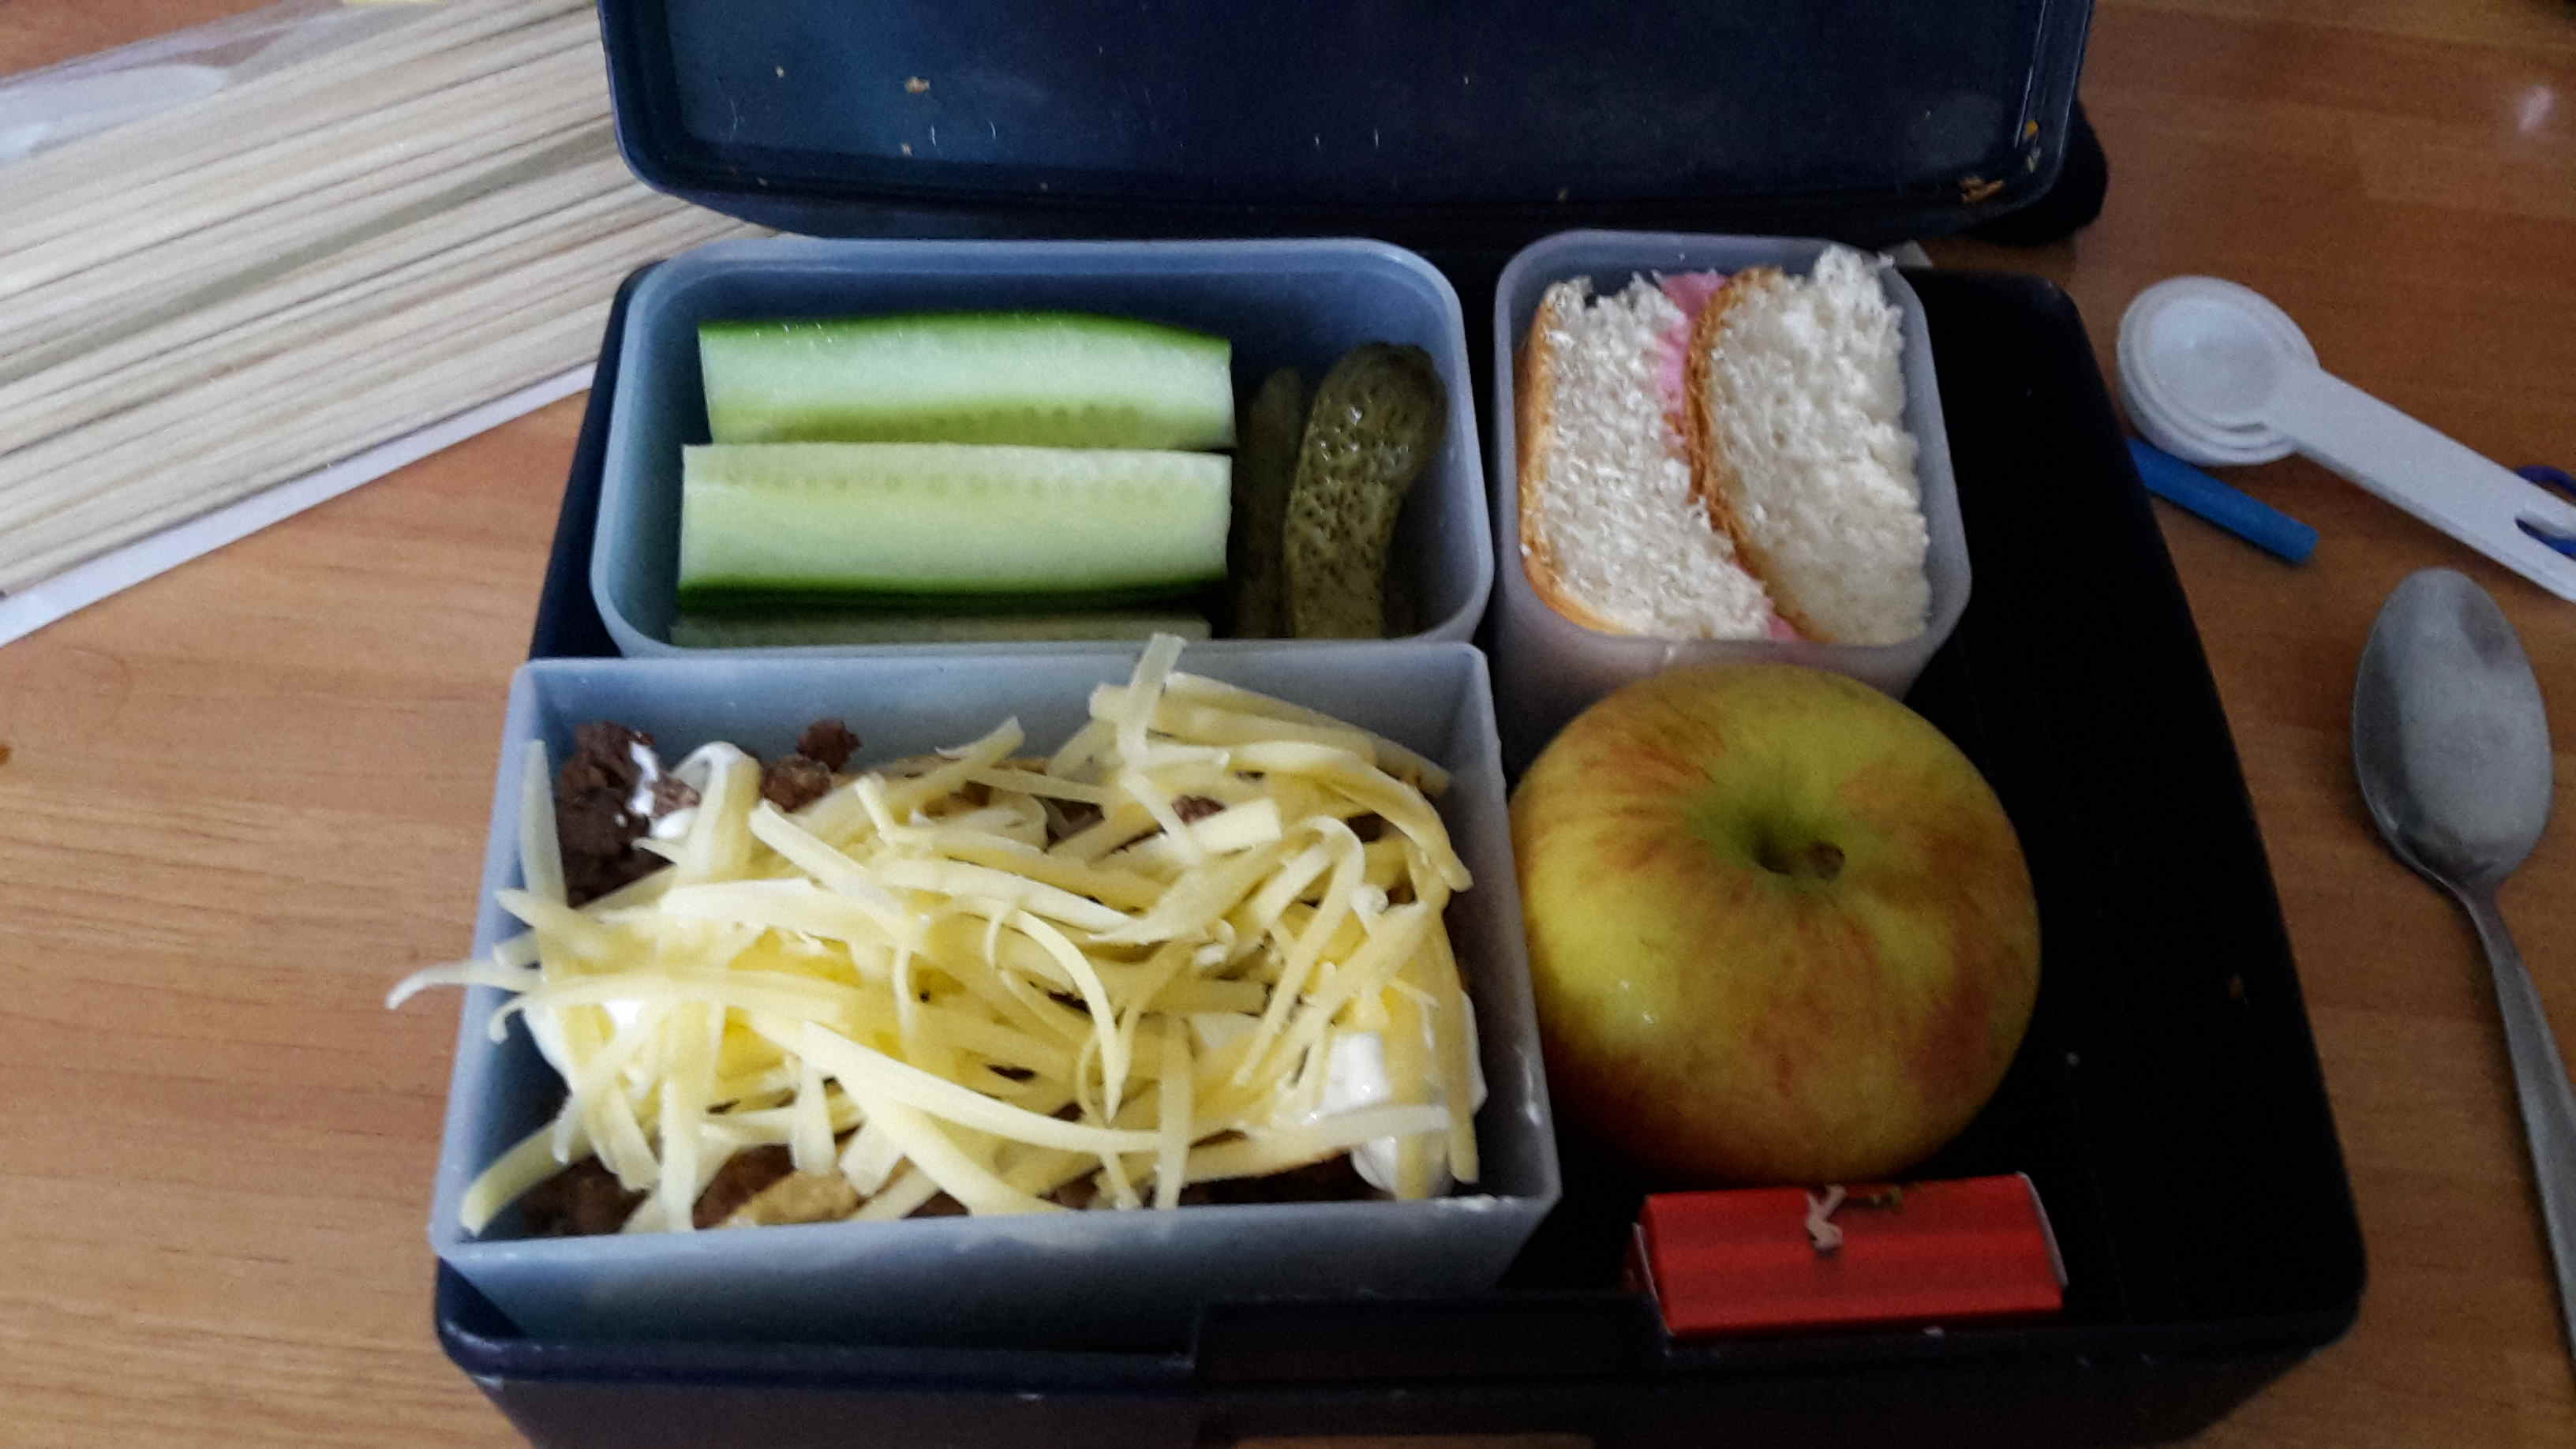 Christine Strydom says she keeps her kids' lunches real and to the family's means. Photo / Supplied